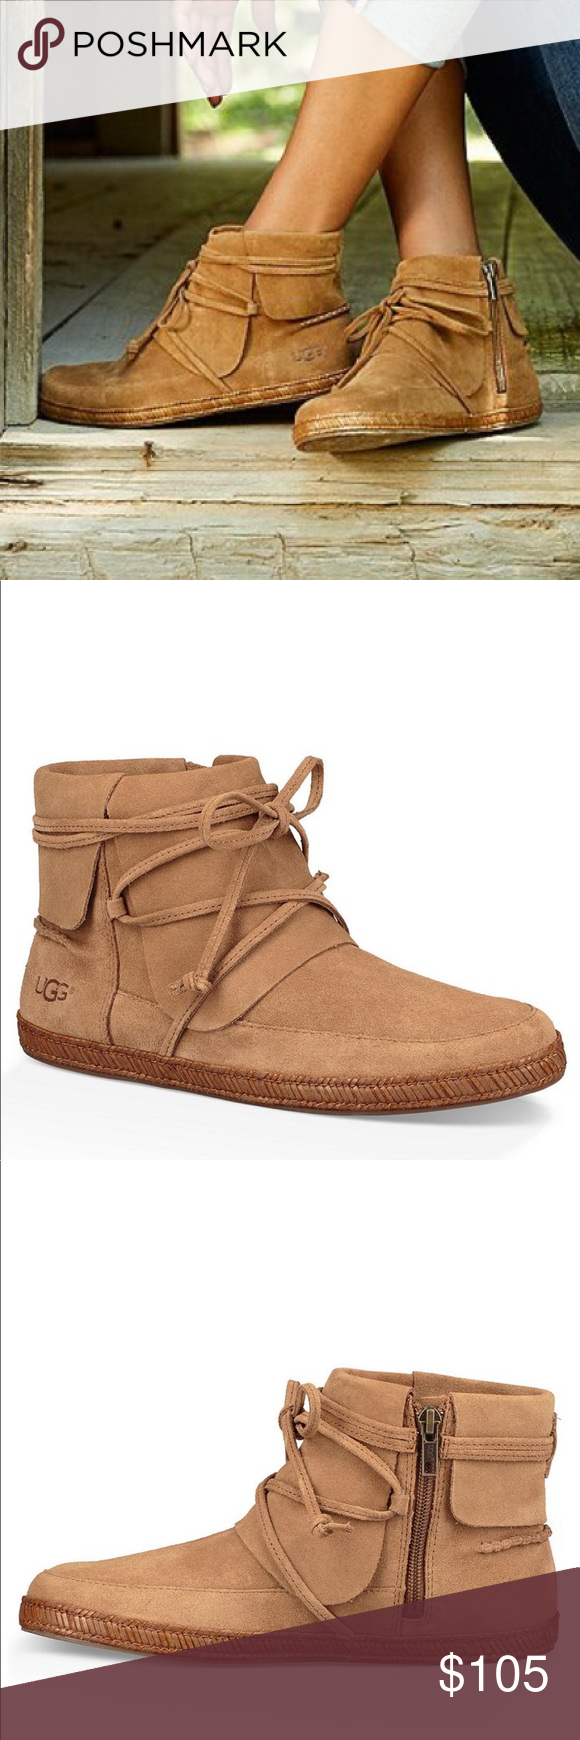 4f9158f1a53 NEW UGG REID LACE UP BOOT UGG